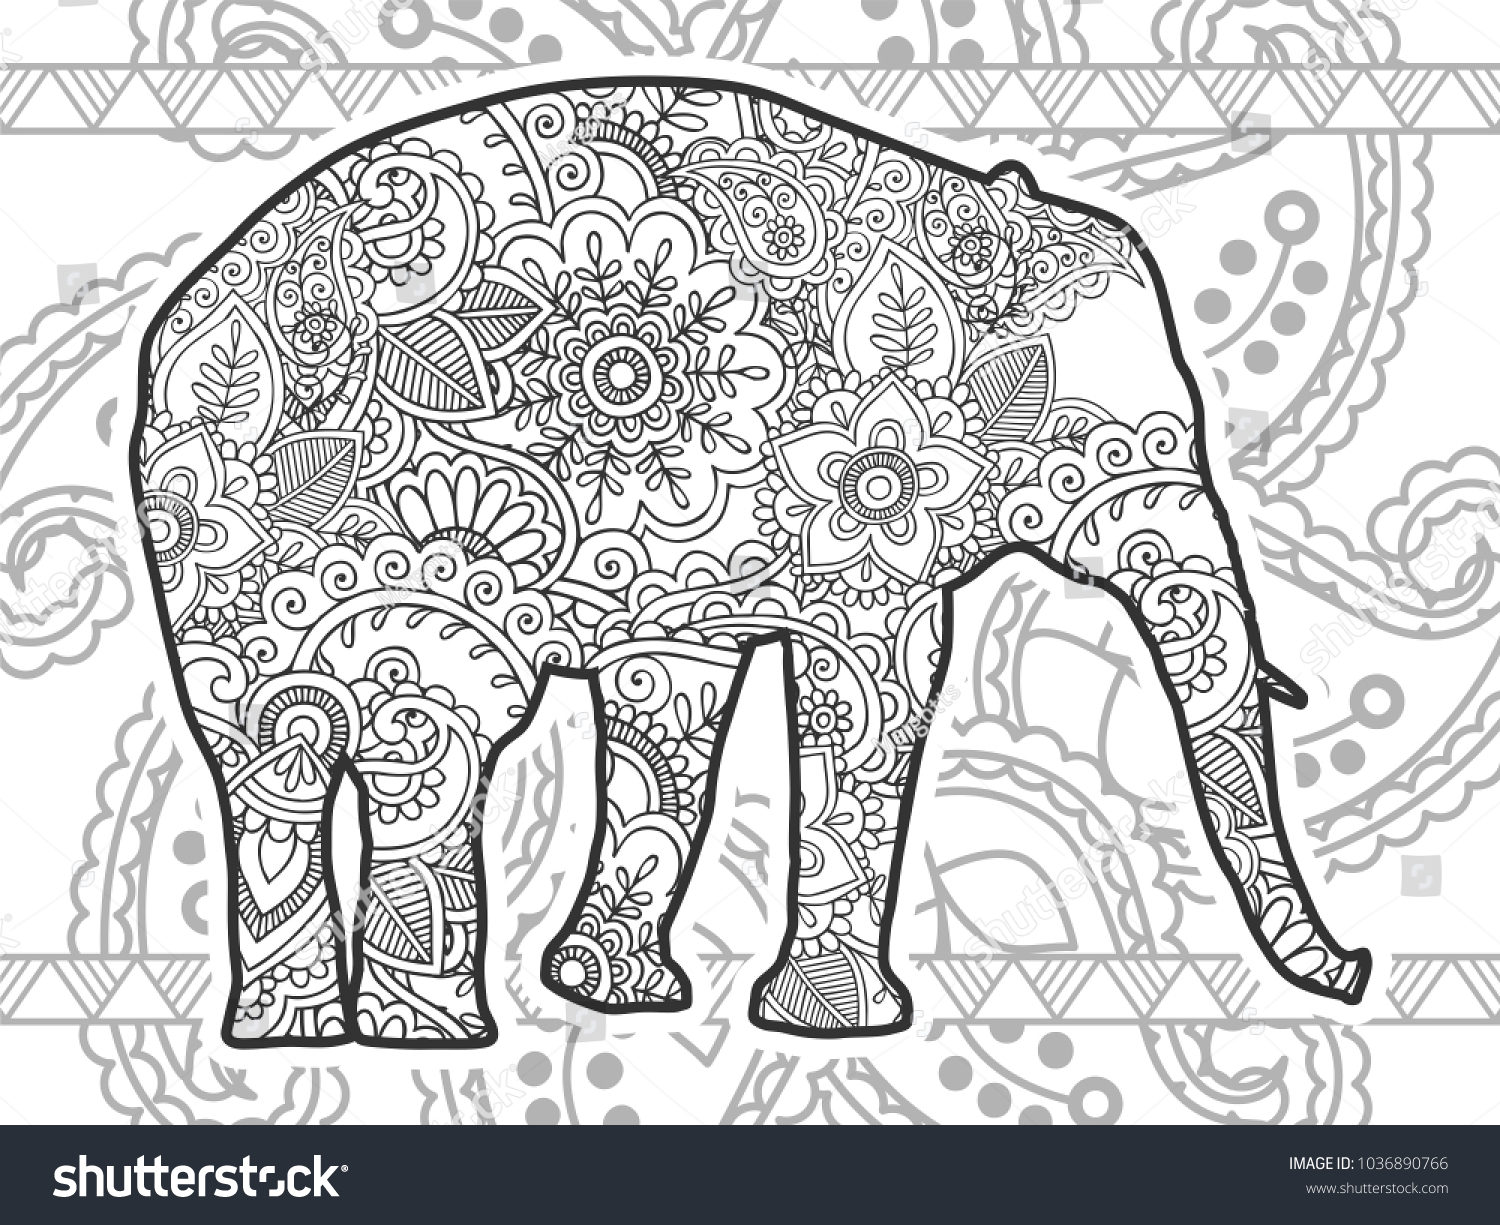 Adult Coloring Bookpage Elephant Ornamental Background Stock Vector ...